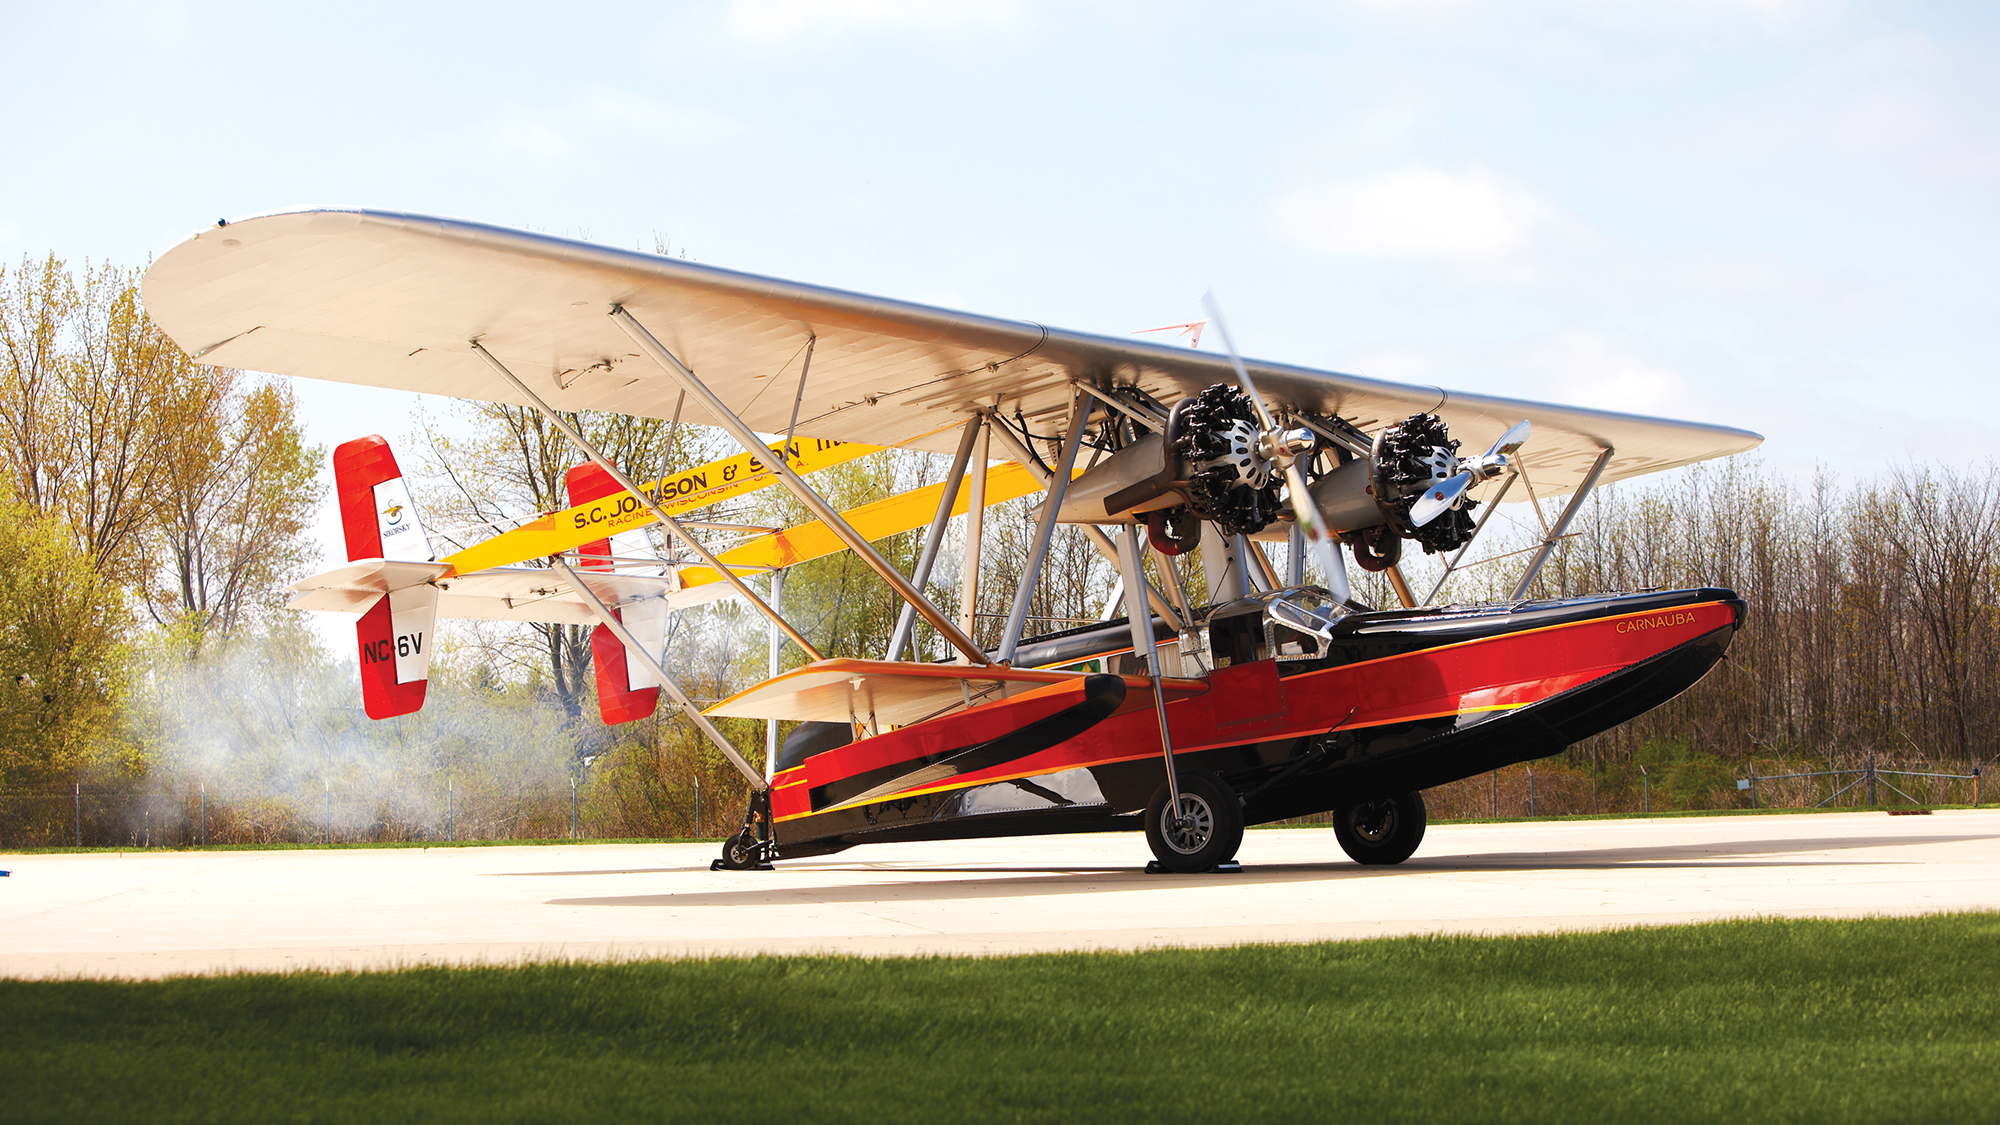 L'avion amphibie Carnauba de Sam Johnson